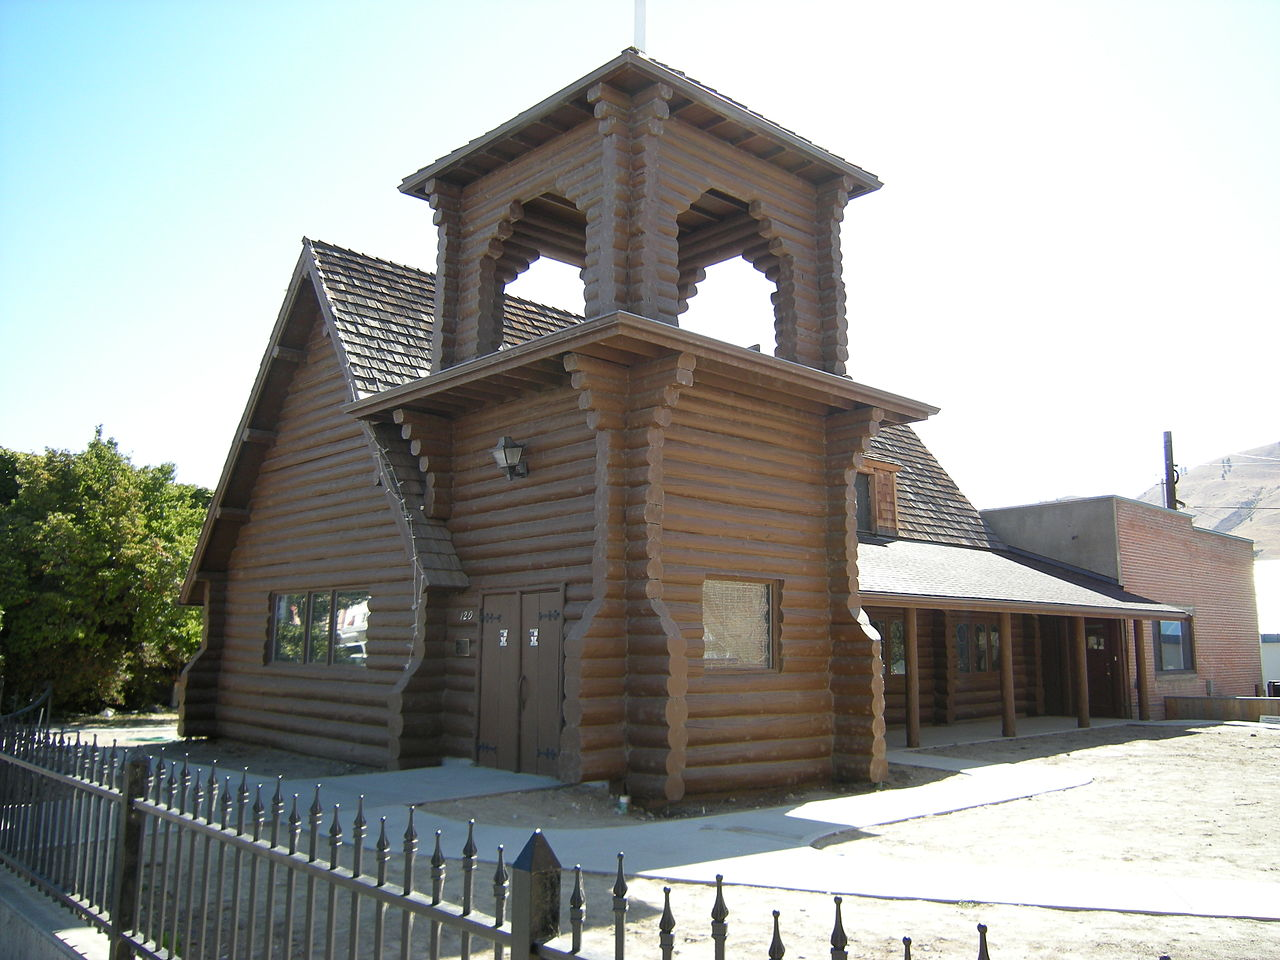 Built in 1898, St. Andrew's Episcopal Church is believed to be the oldest log church in the state still used by the same congregation.